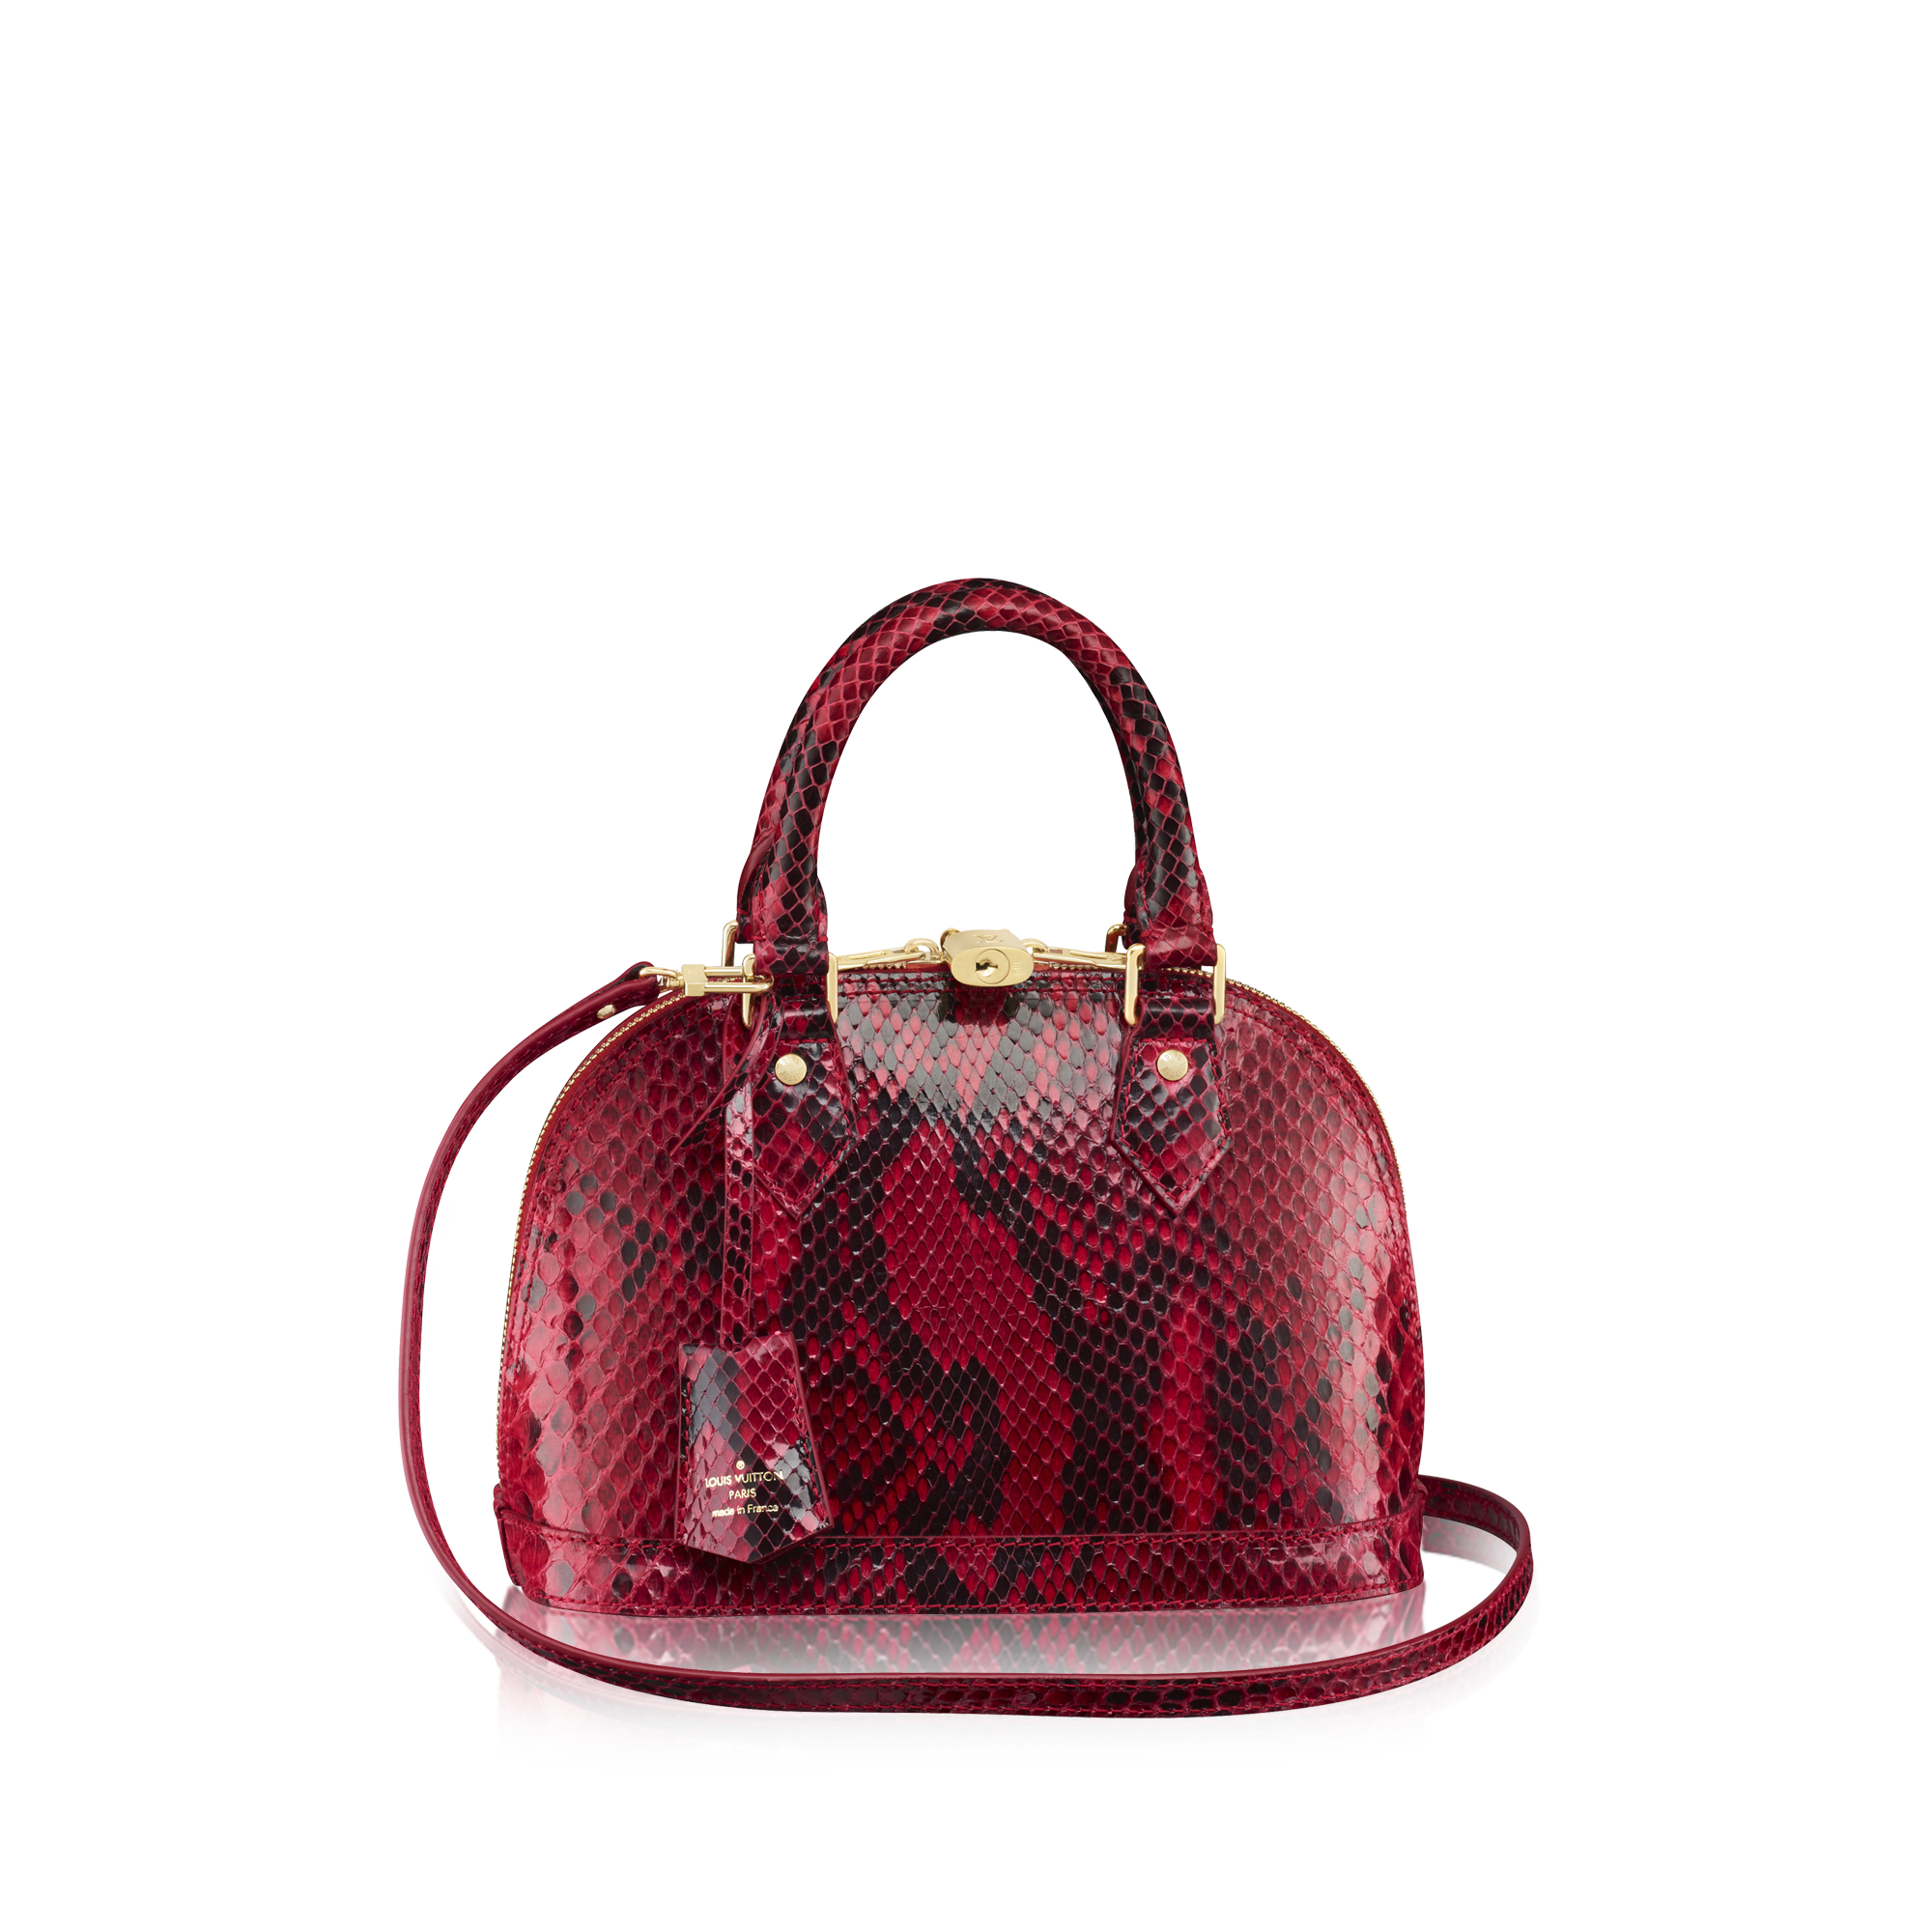 db7c0d37a5fe Mini Handbags